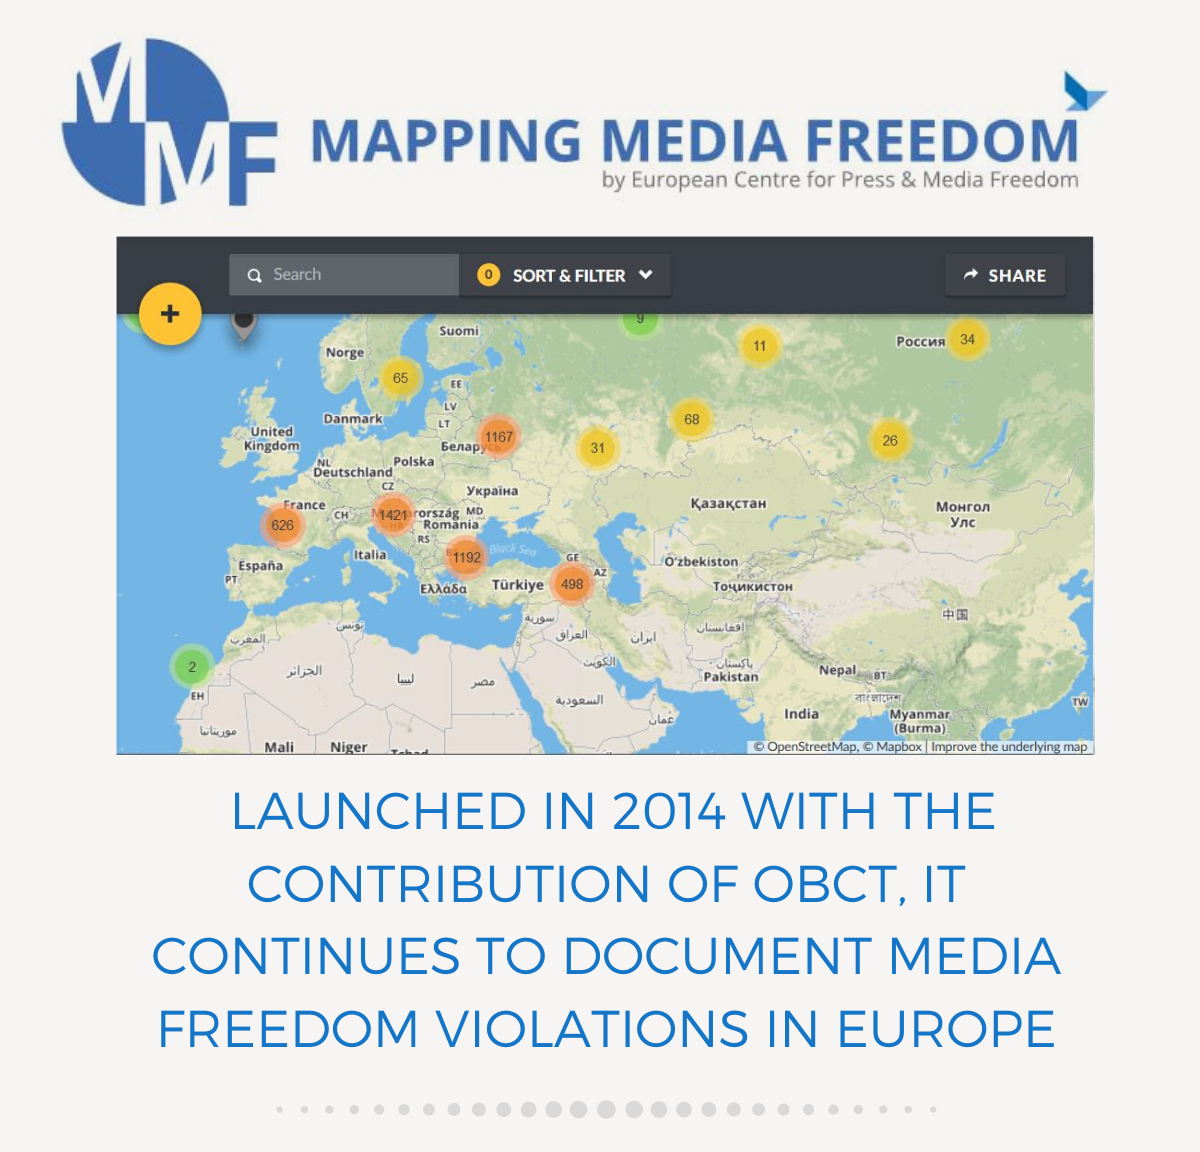 Mapping Media Freedom